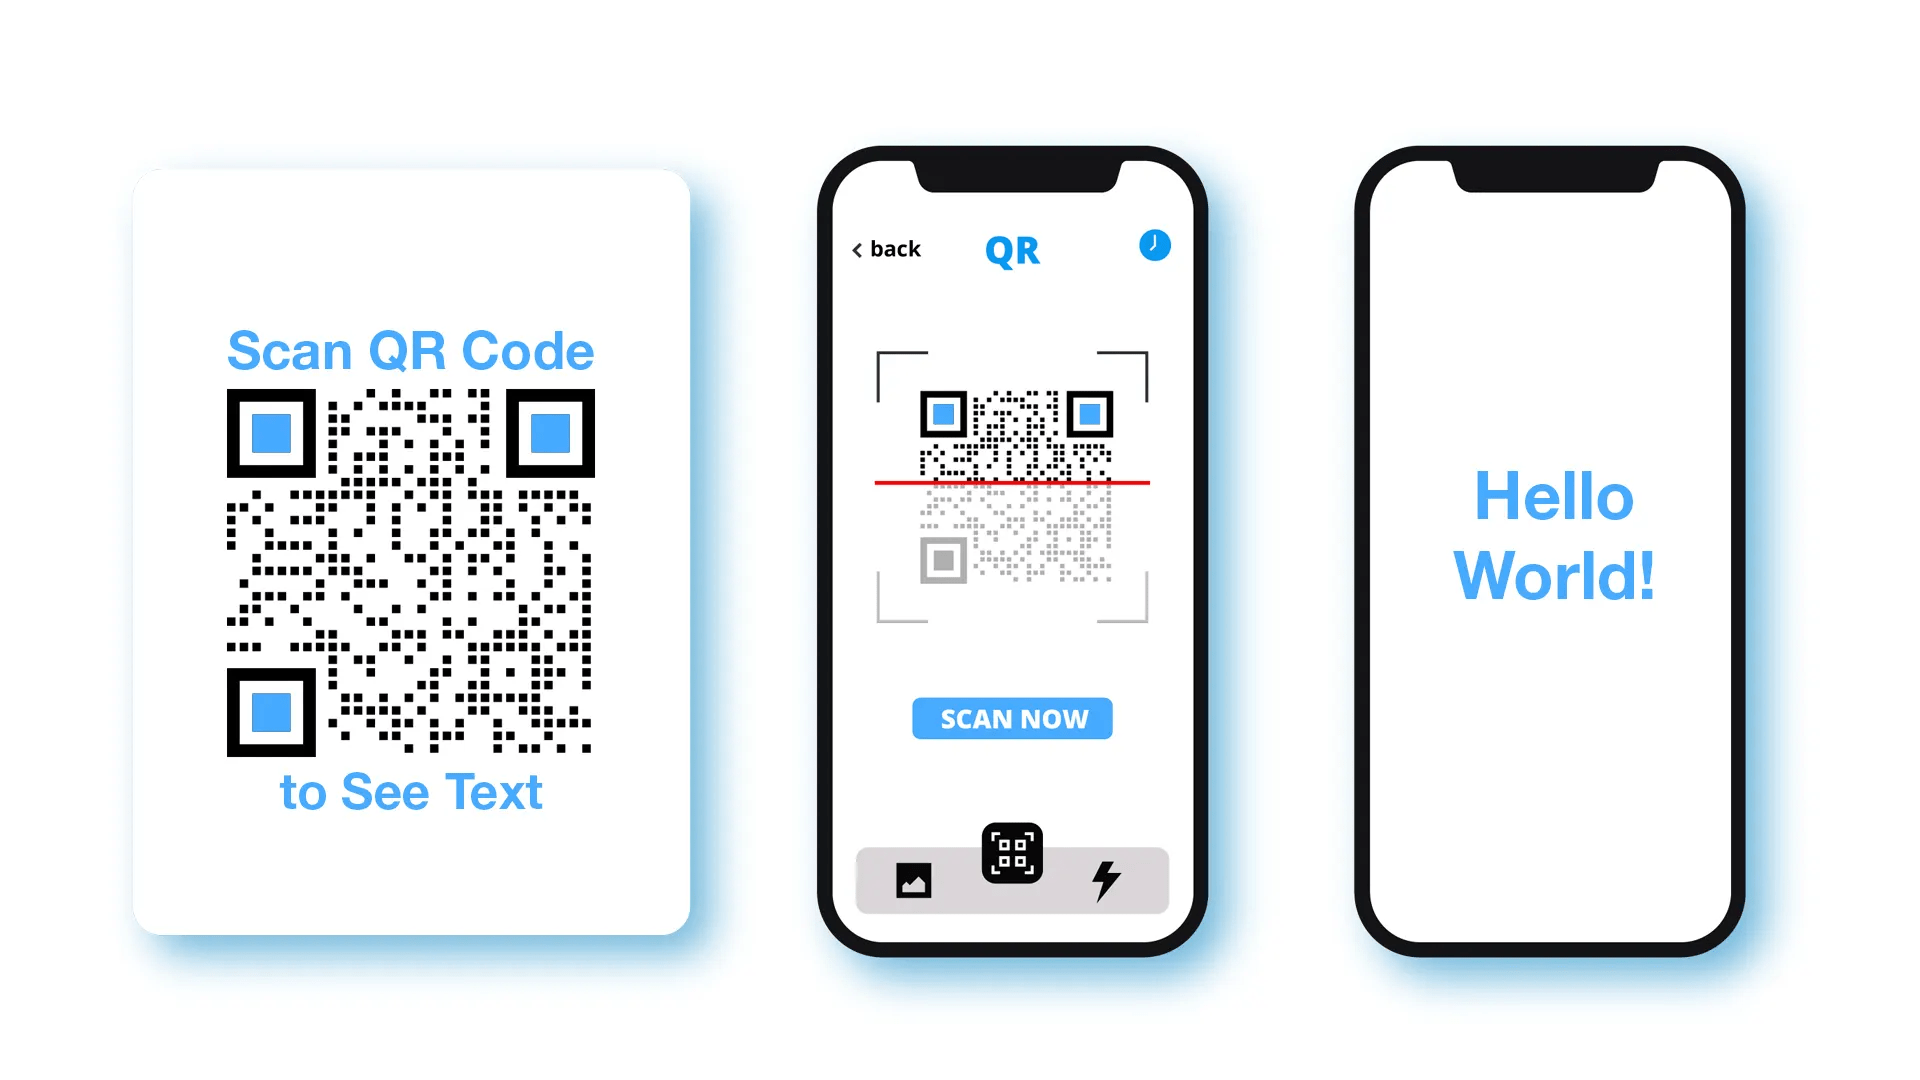 Must-follow guidelines to make your QR code marketing a success